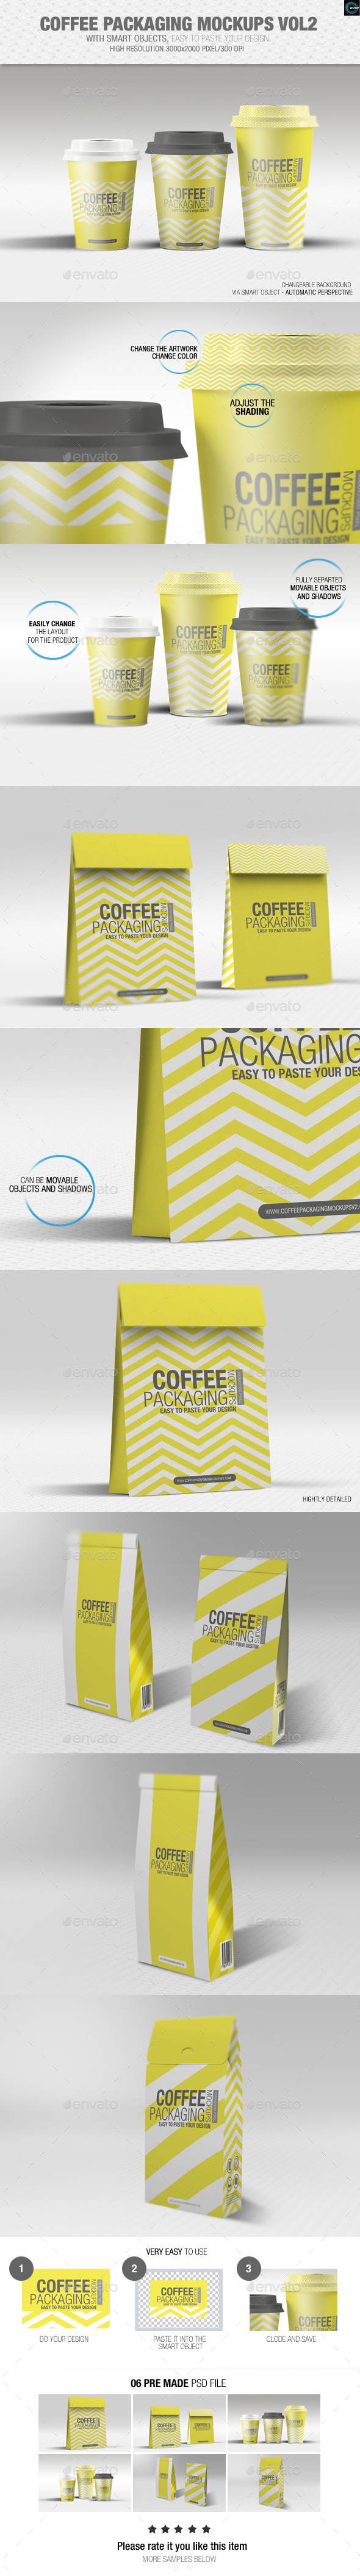 Coffee Packaging Mockups Vol2 - Food and Drink Packaging